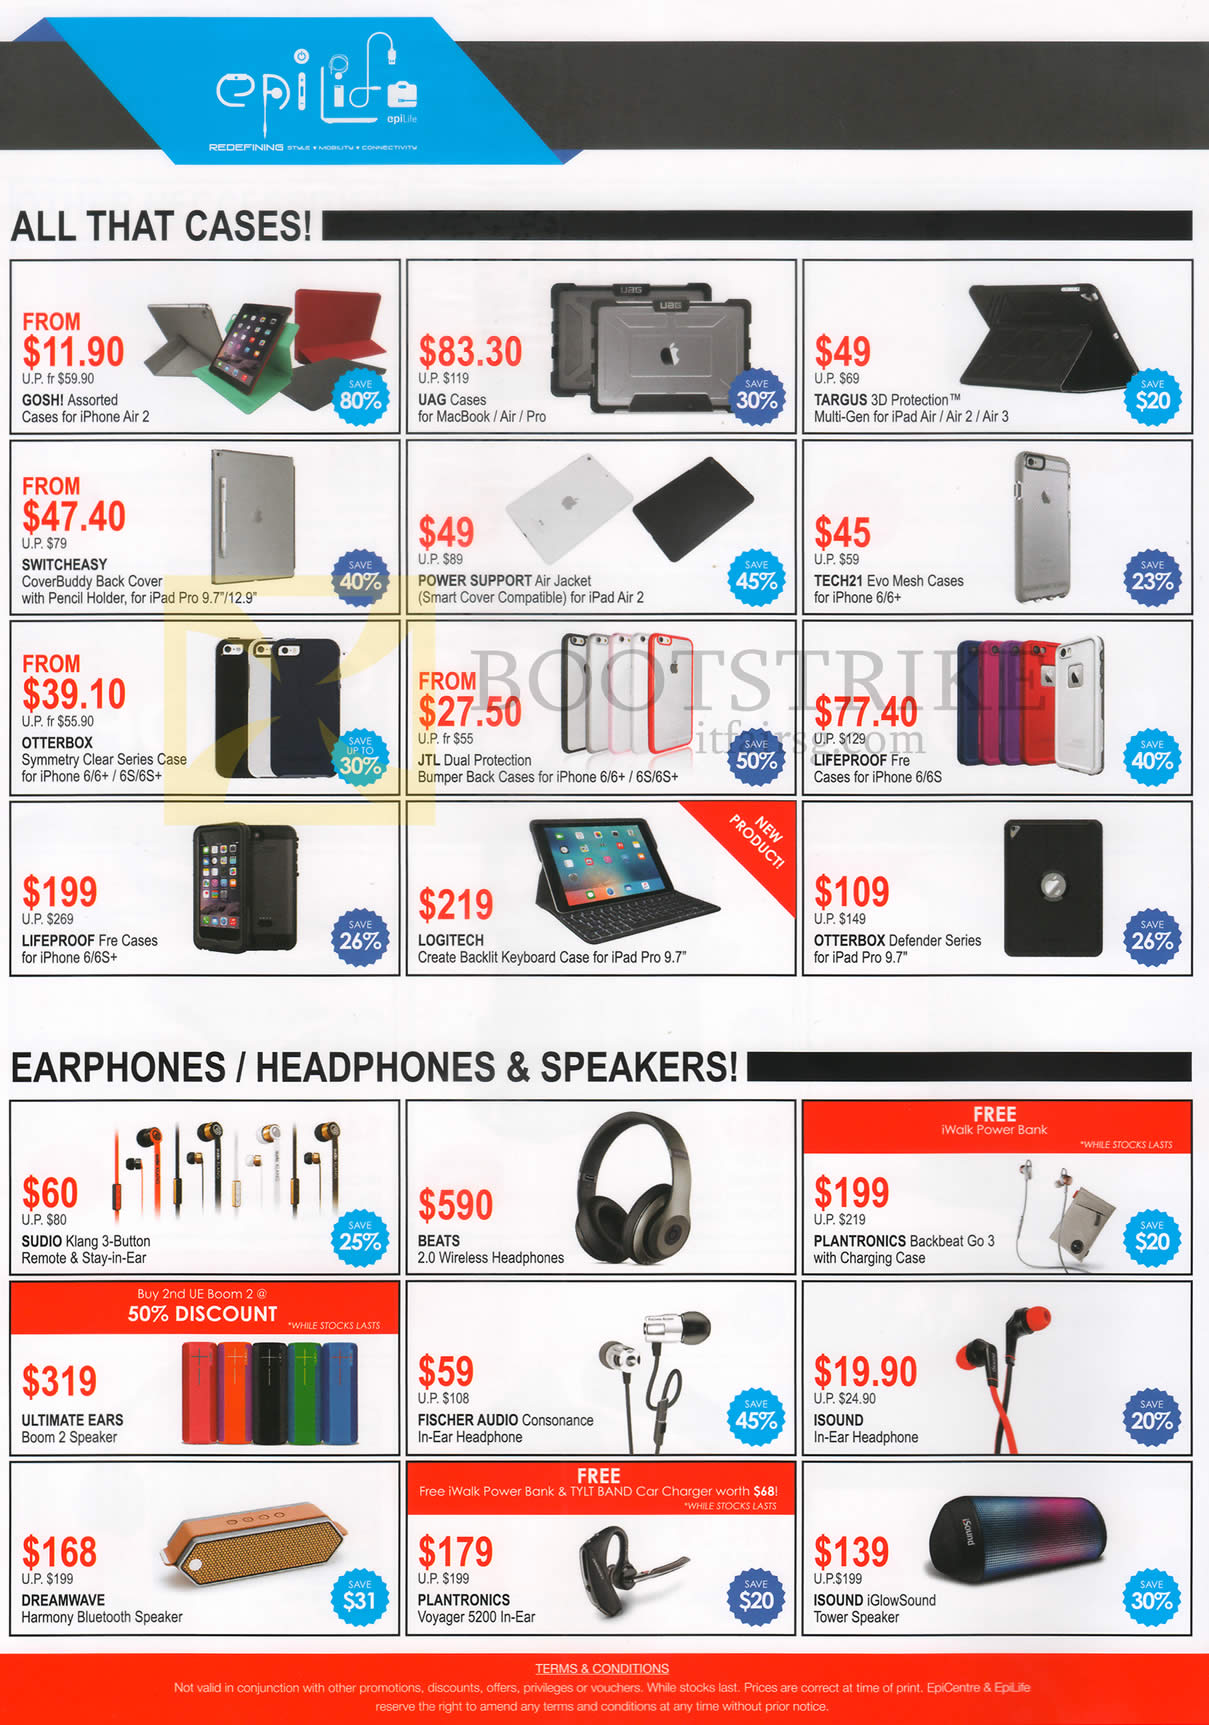 COMEX 2016 price list image brochure of EpiCentre Cases, Earphones, Headphones, Speakers, Gosh, UAG, Targus, Tech21, Otterbox, Lifeproof, JTL, Logitech, Studio, Beats, Plantronics, ISound